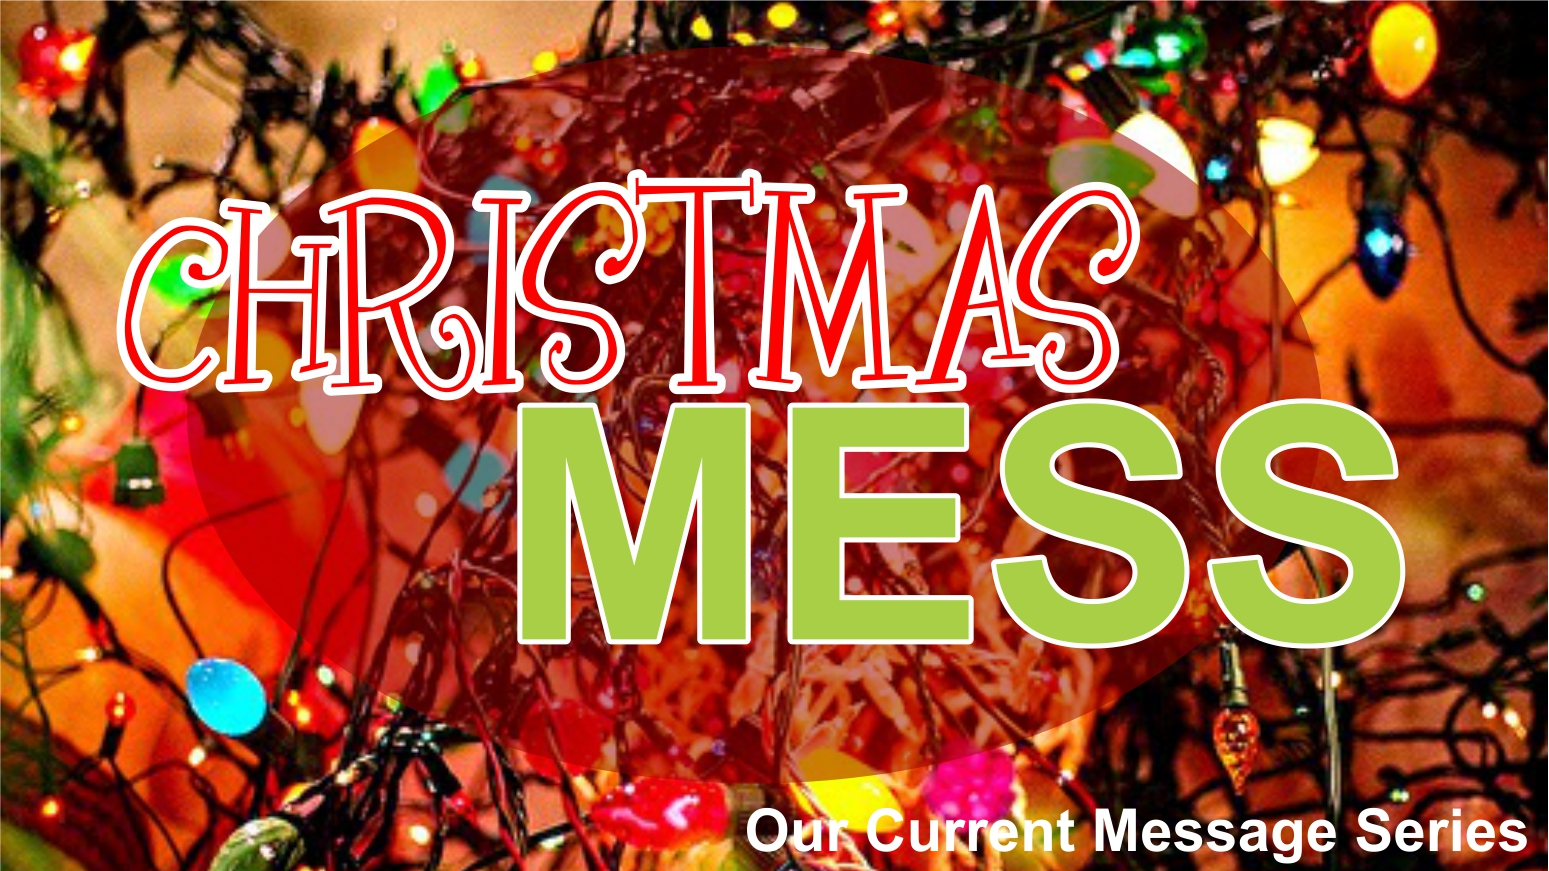 Dealing with the Mess of Christmas